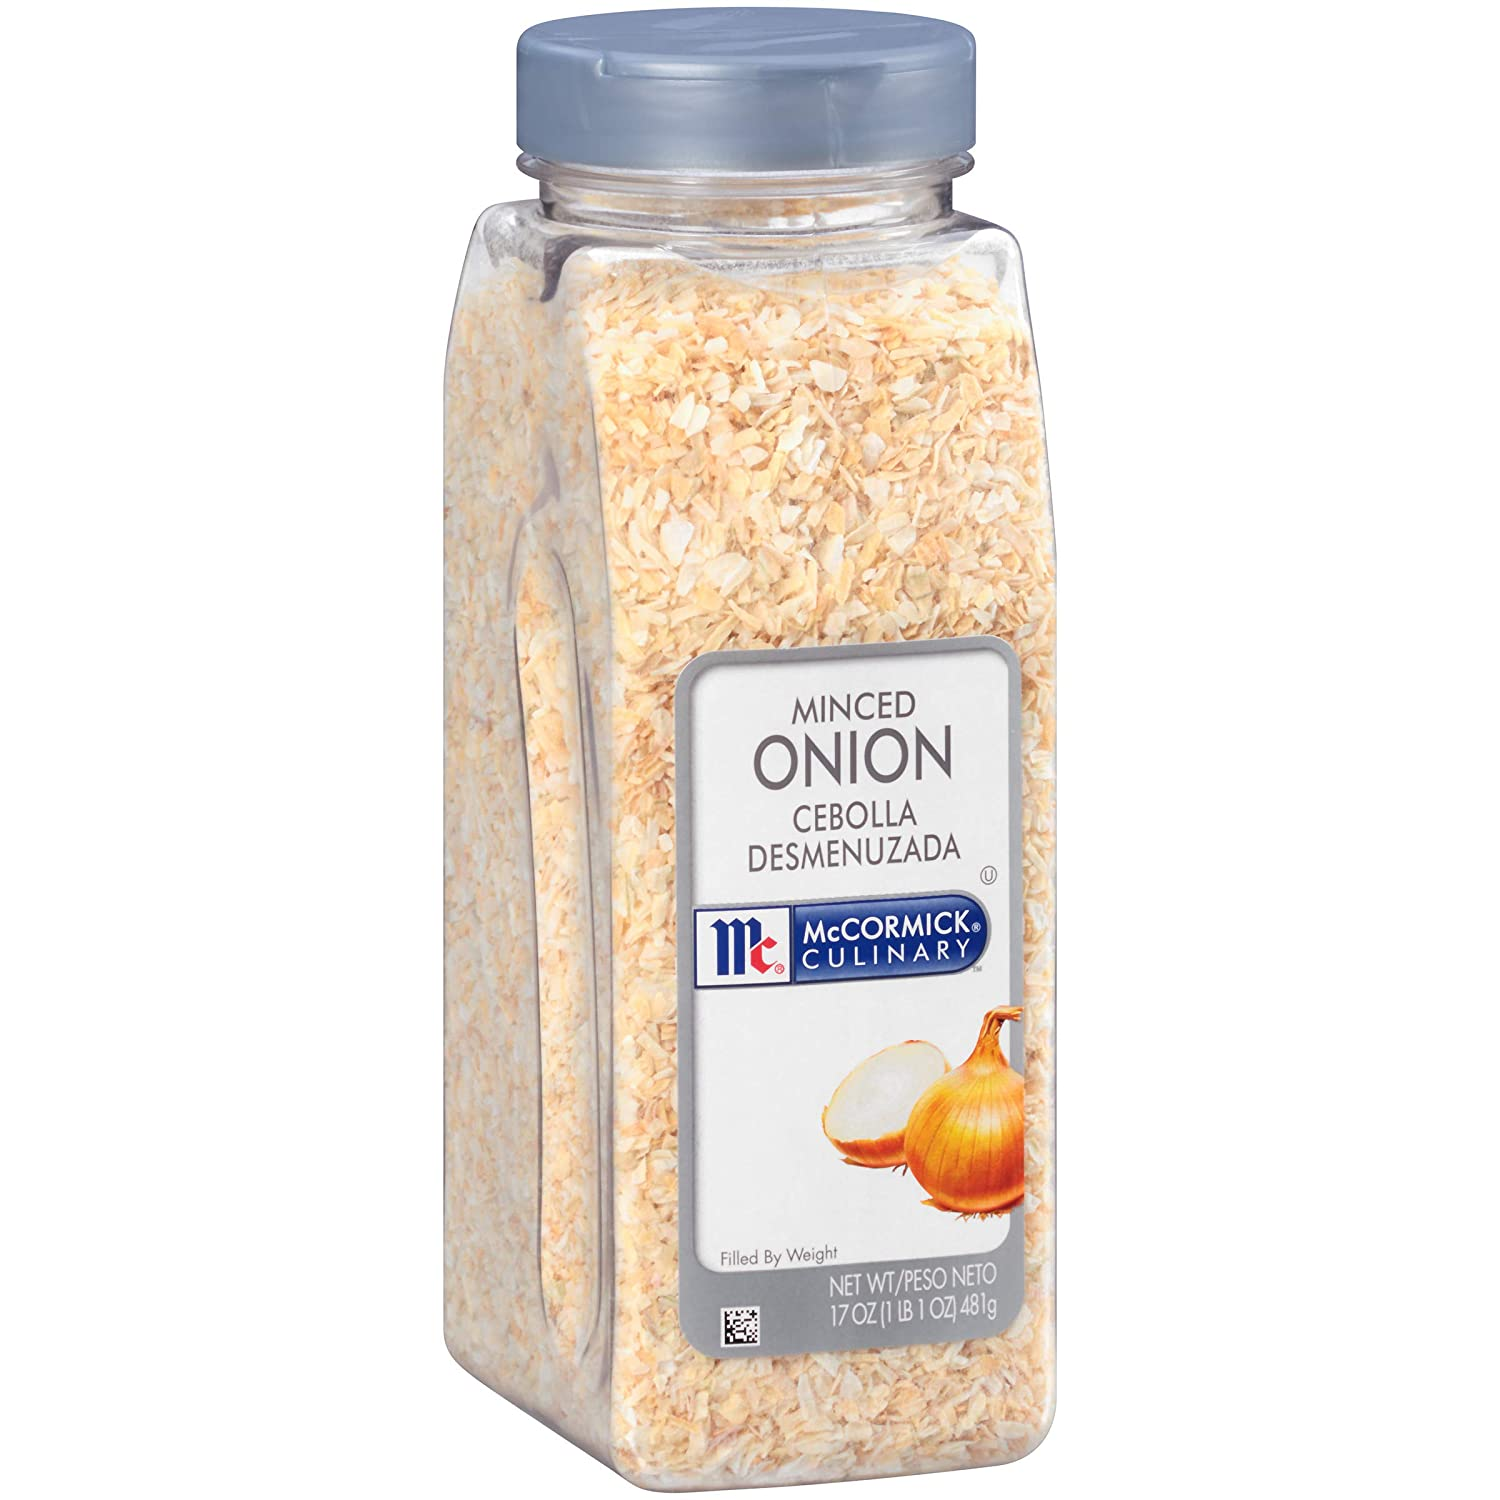 McCormick Culinary Minced Onion, 17 oz